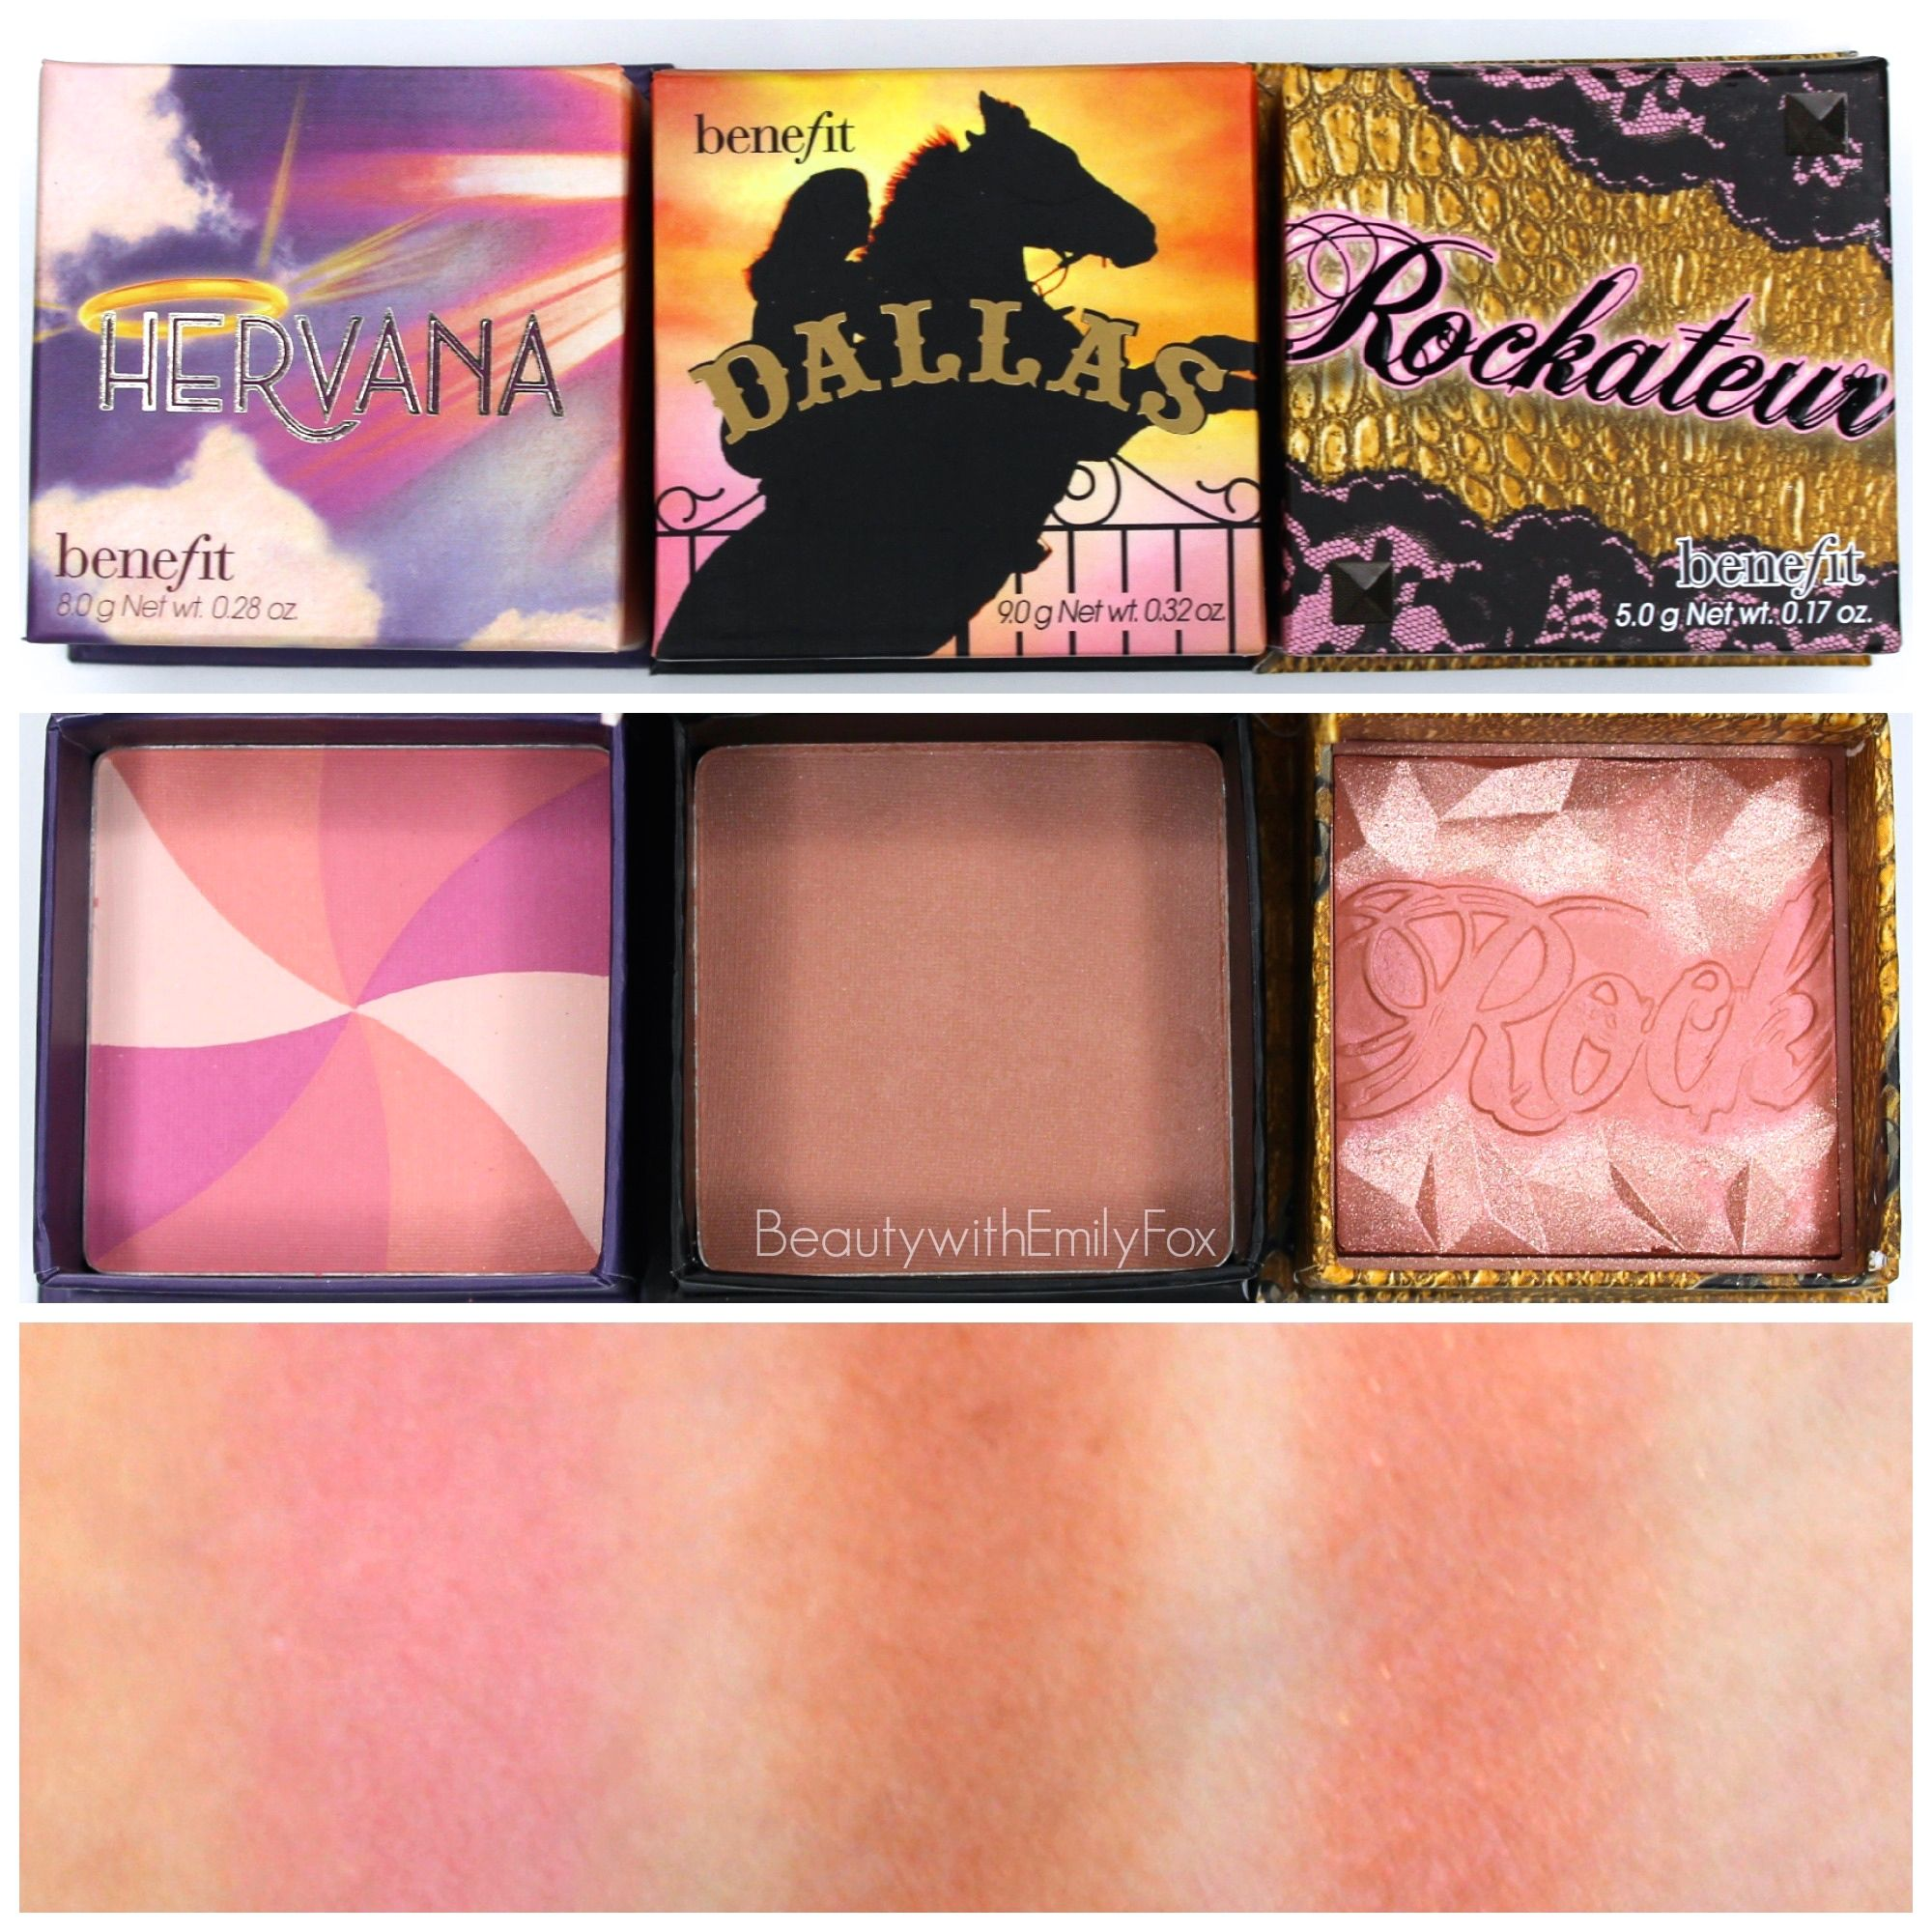 swatches of the benefit blushes in hervana dallas and rockateur from my last sephora hauls. Black Bedroom Furniture Sets. Home Design Ideas